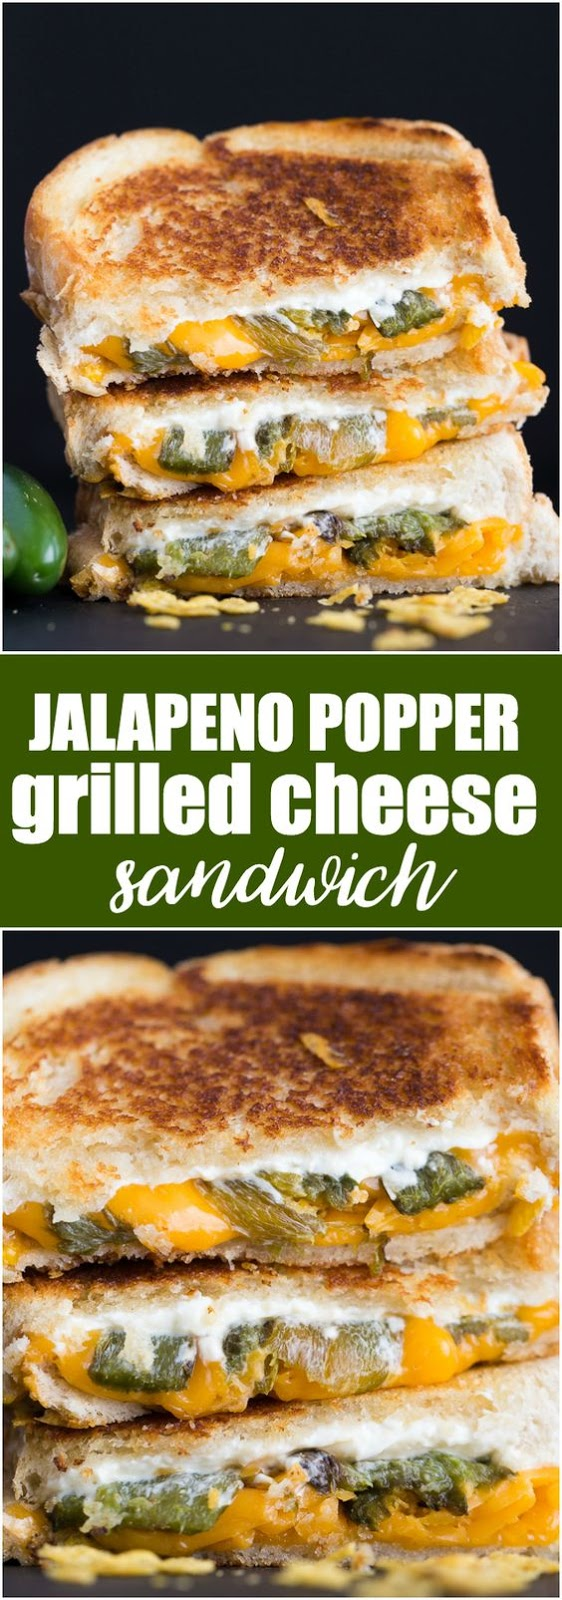 Jalapeno Popper Grilled Cheese Sandwich Recipe - CUCINA DE ...